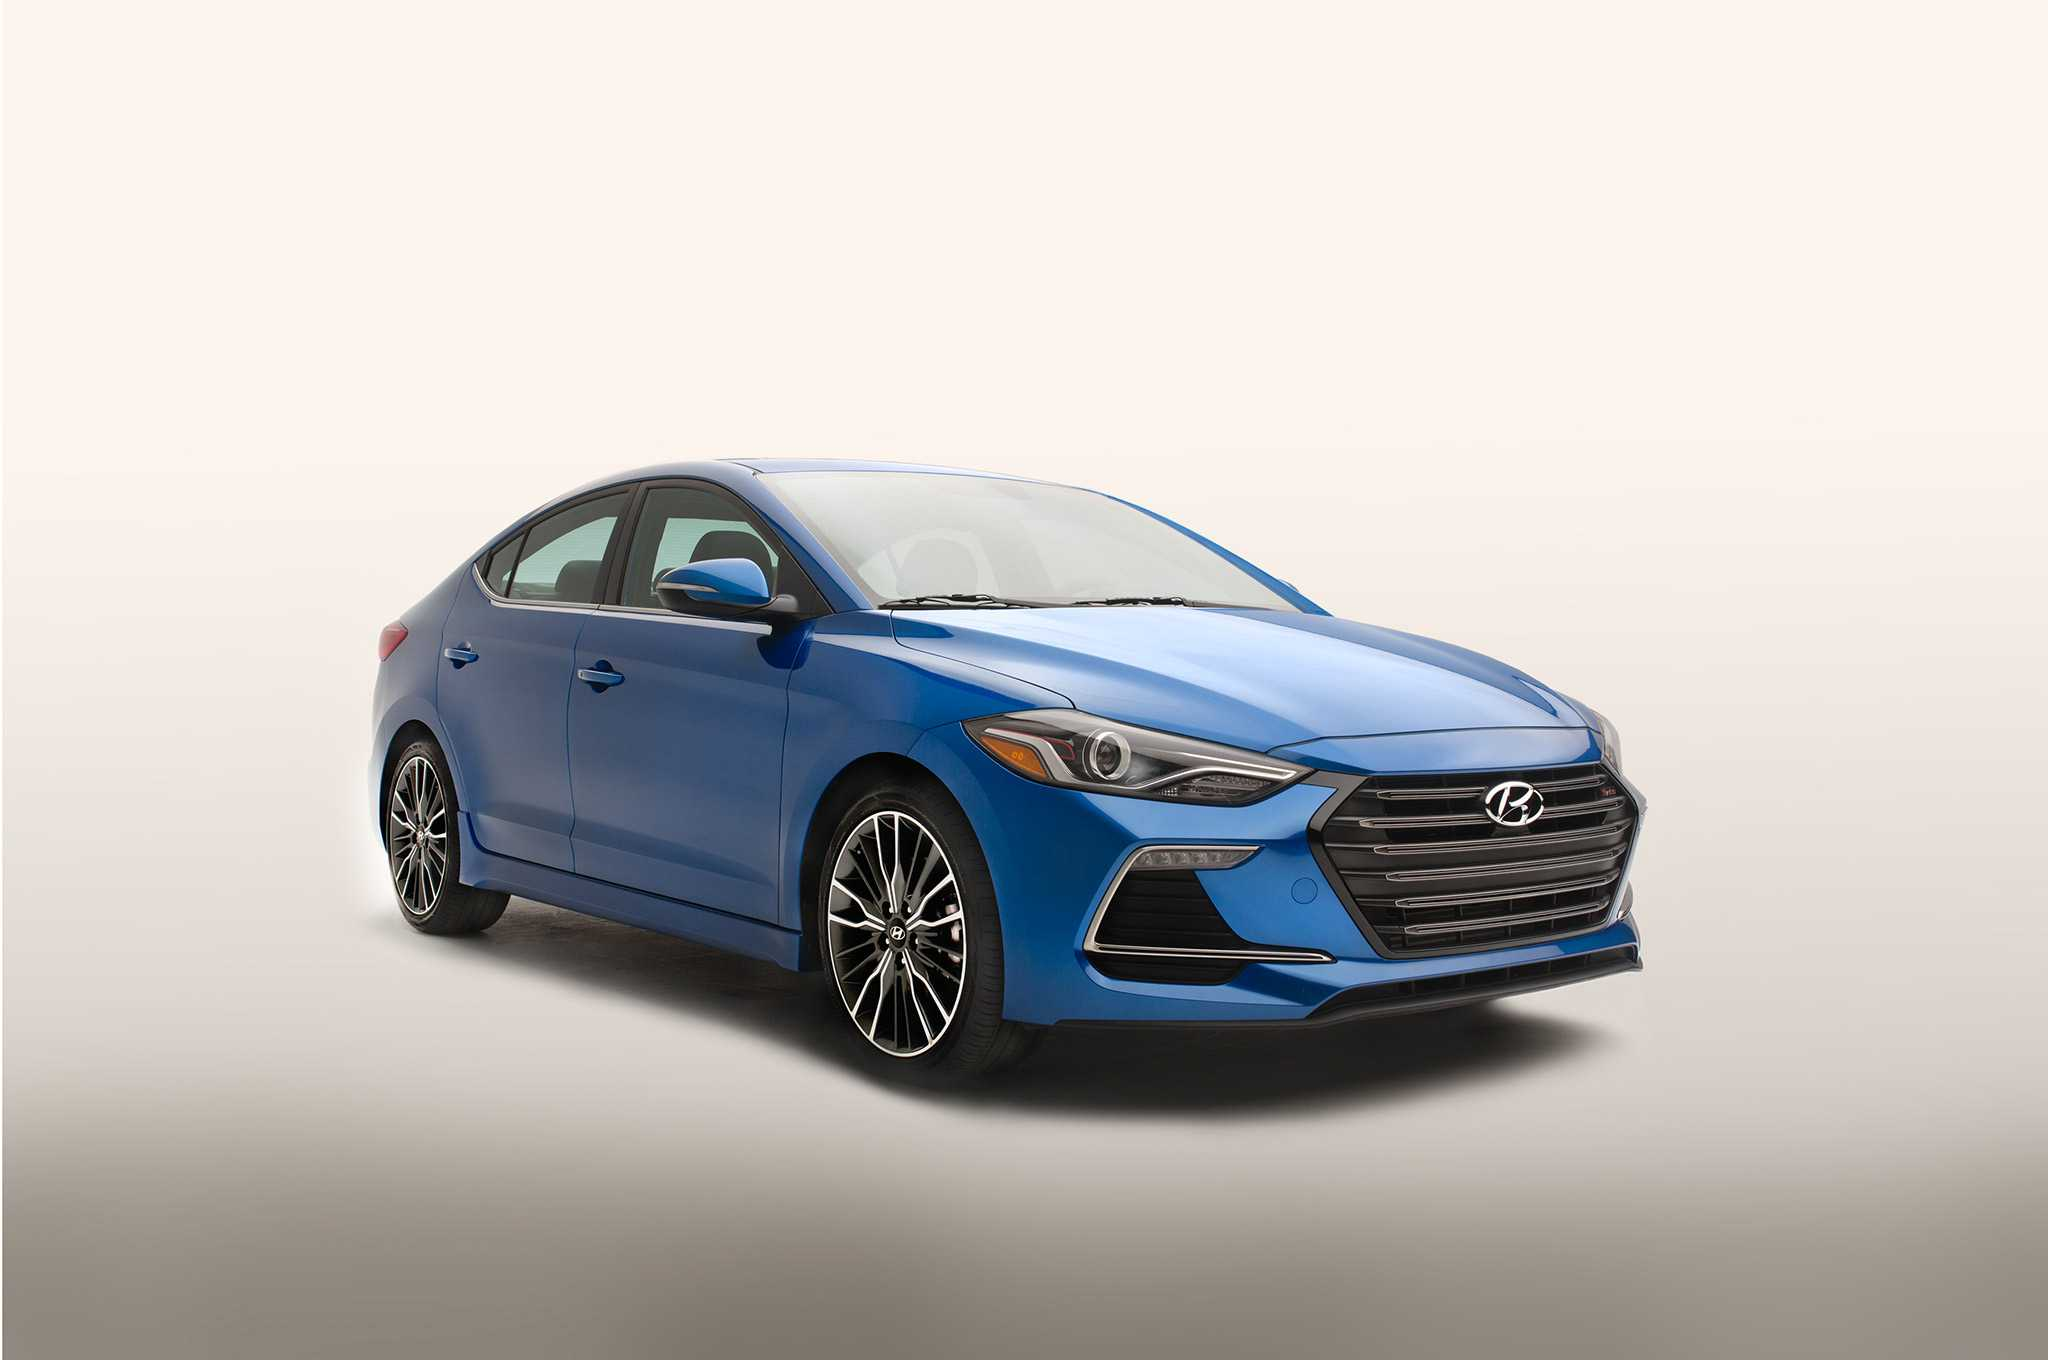 2017 Hyundai Elantra Lineup Expanded With Performance Driven Variants